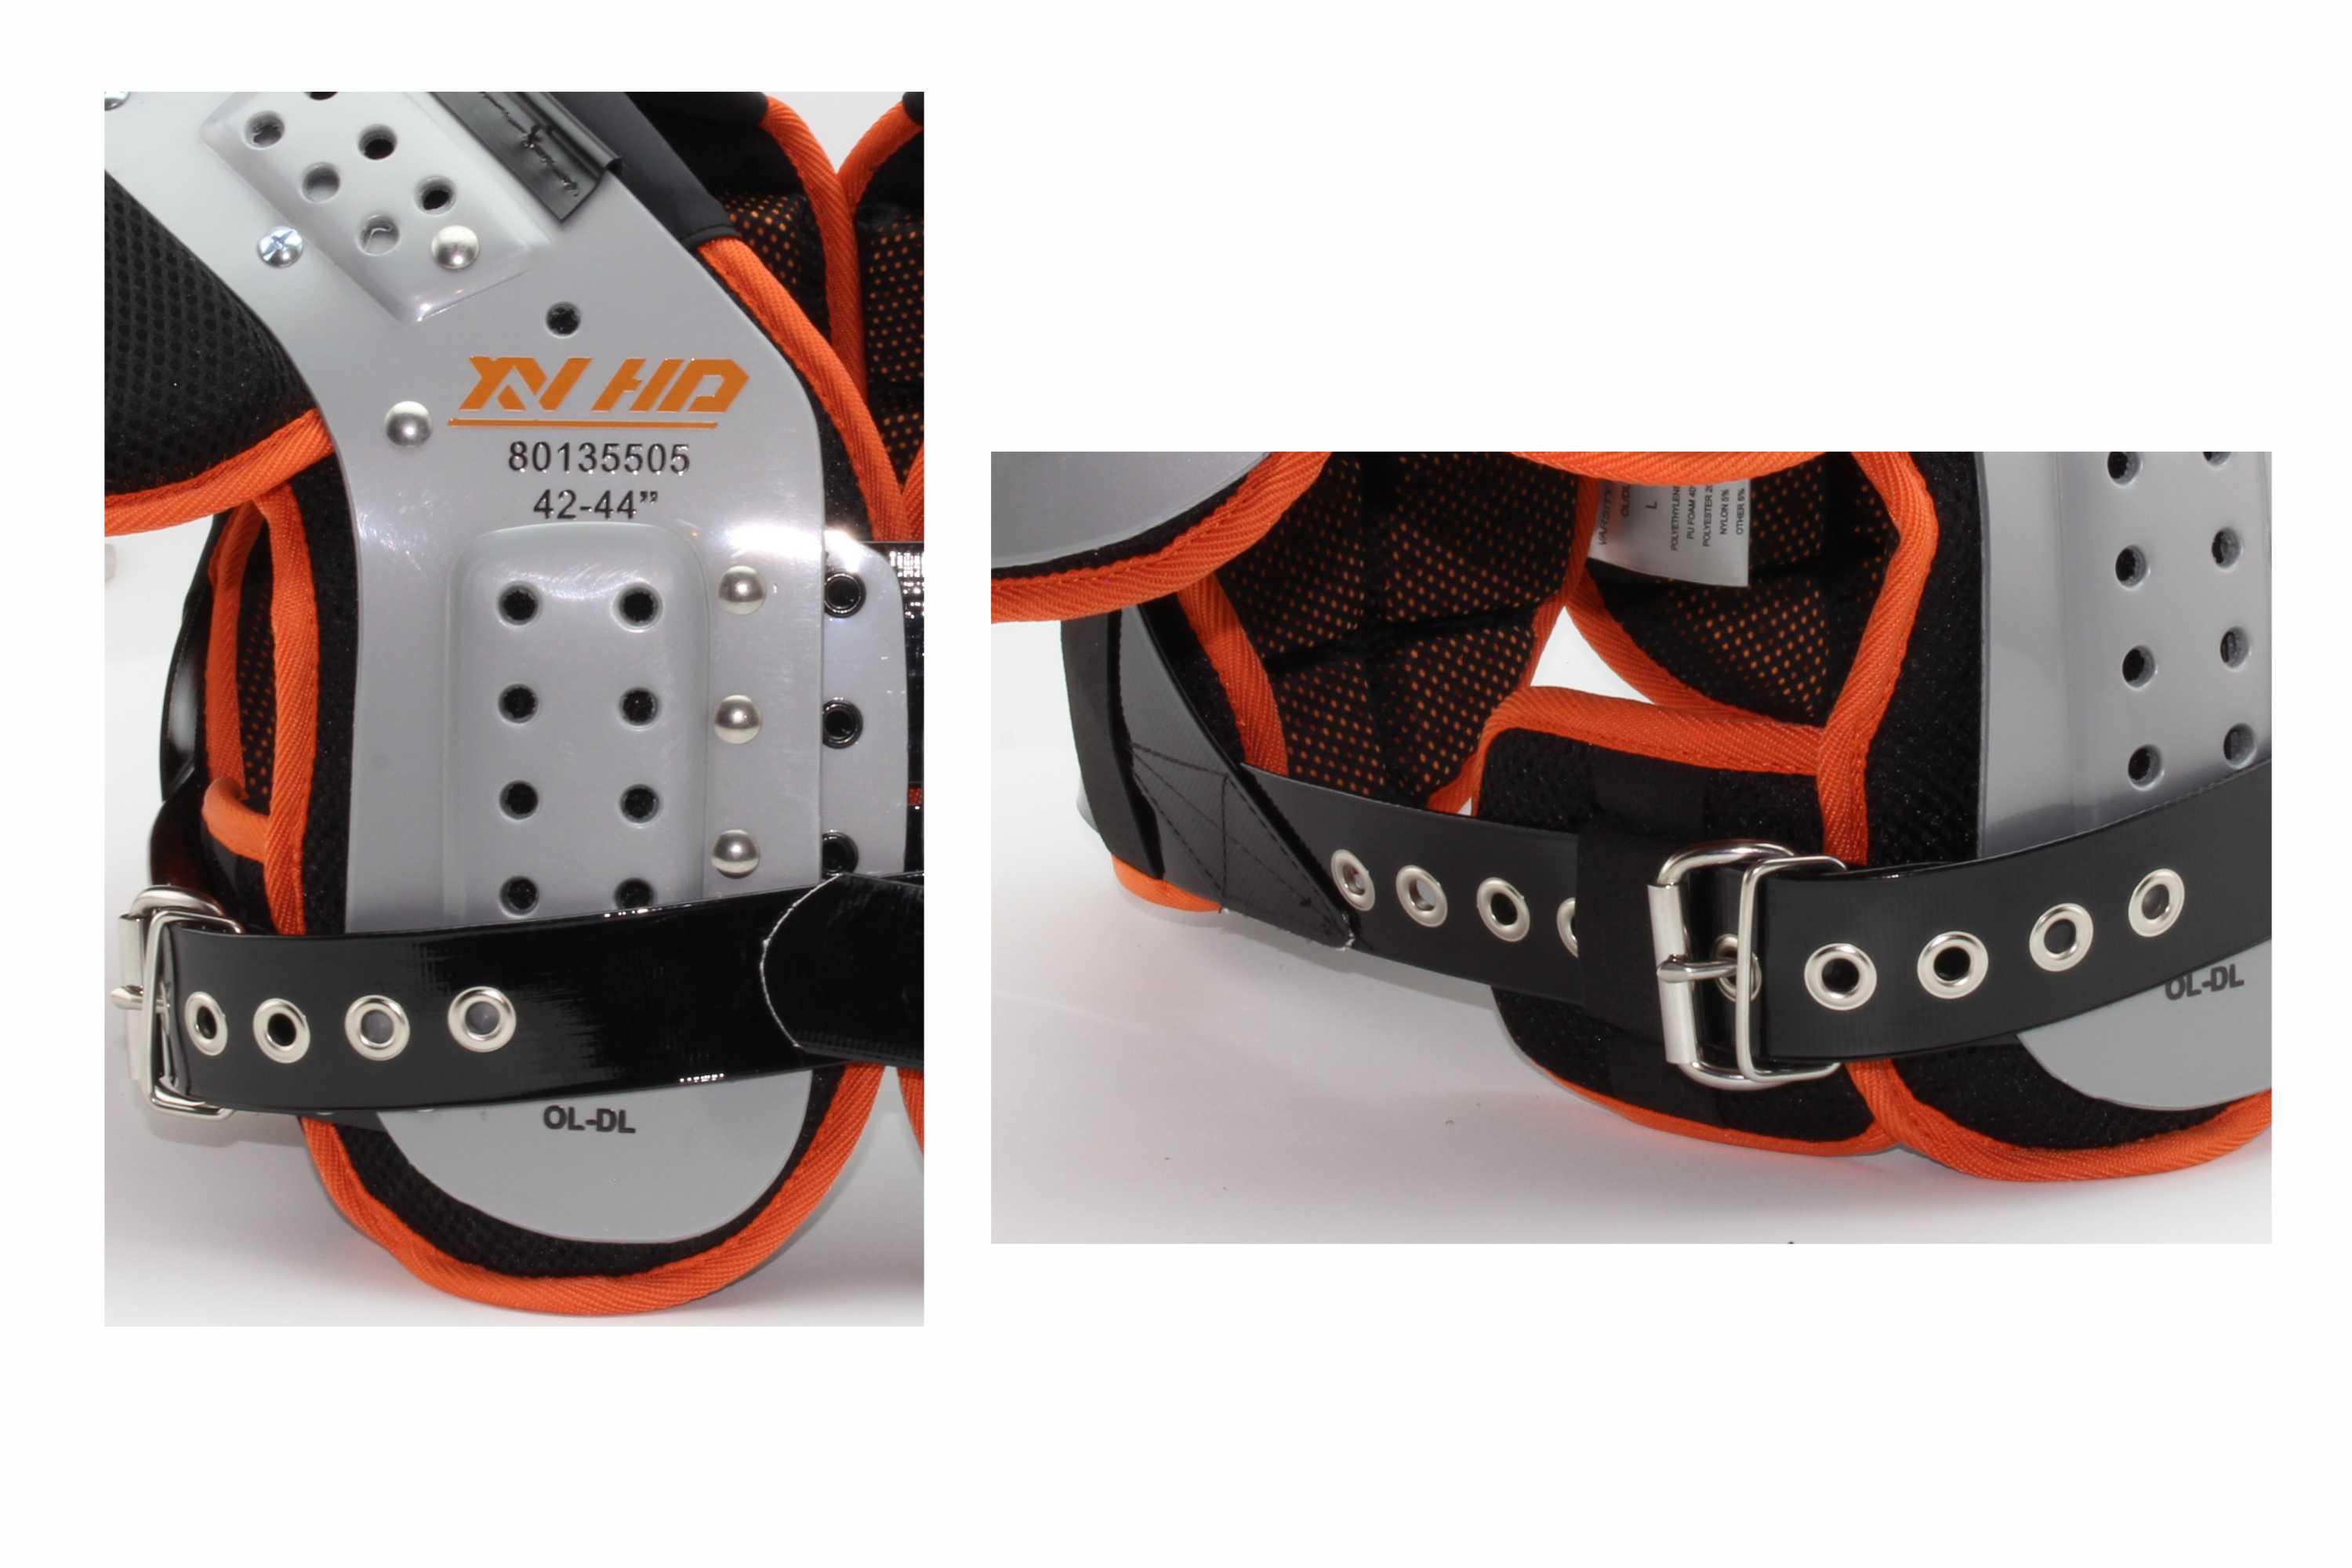 Shoulder Pad de futebol americano adulto XV HD OL-DL